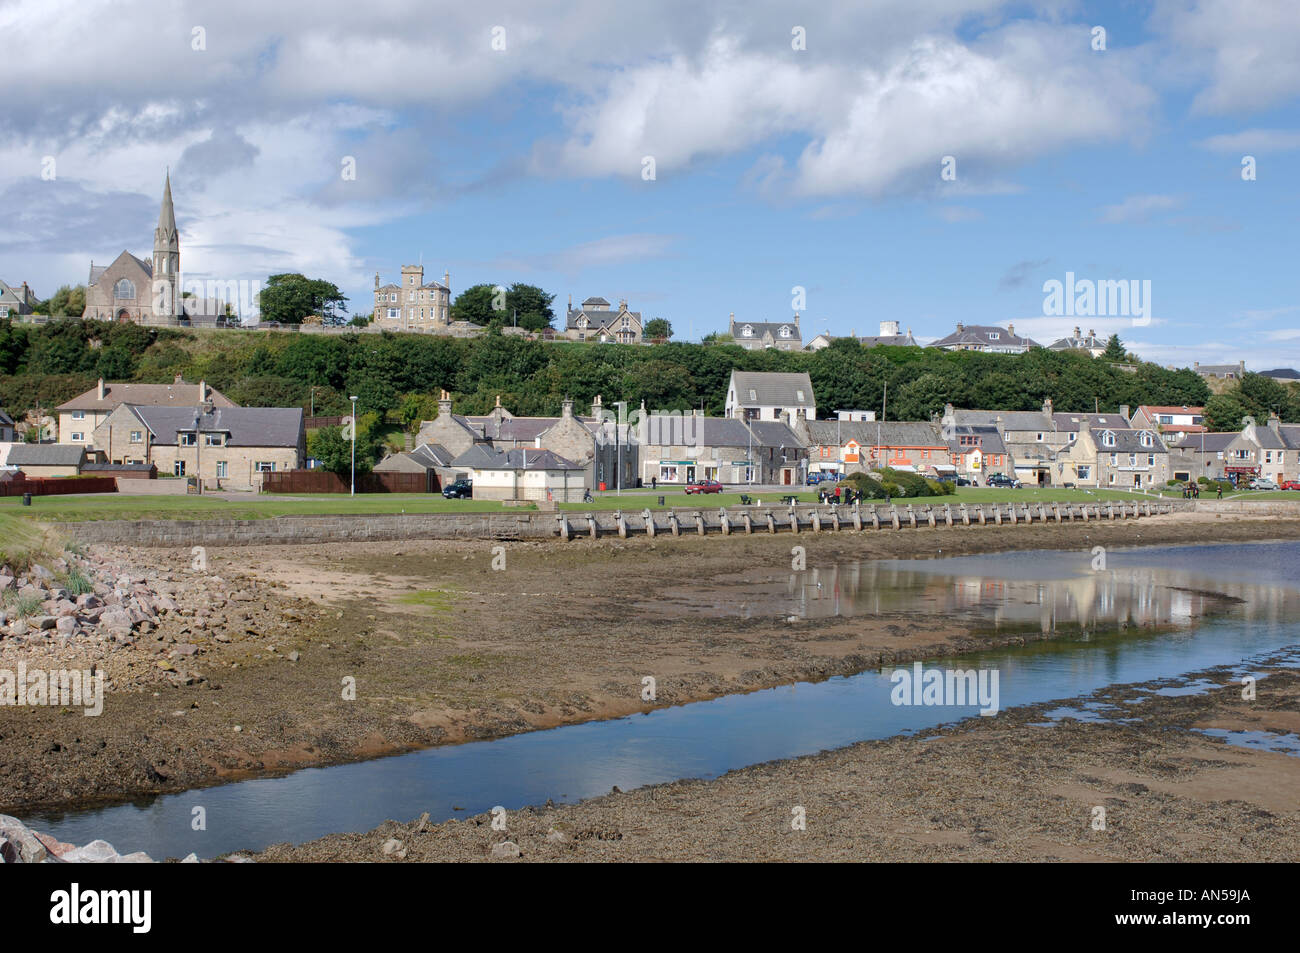 The River Lossie at the Lossiemouth seafront town, Morayshire. Scotland.  XPL 3228-321 - Stock Image